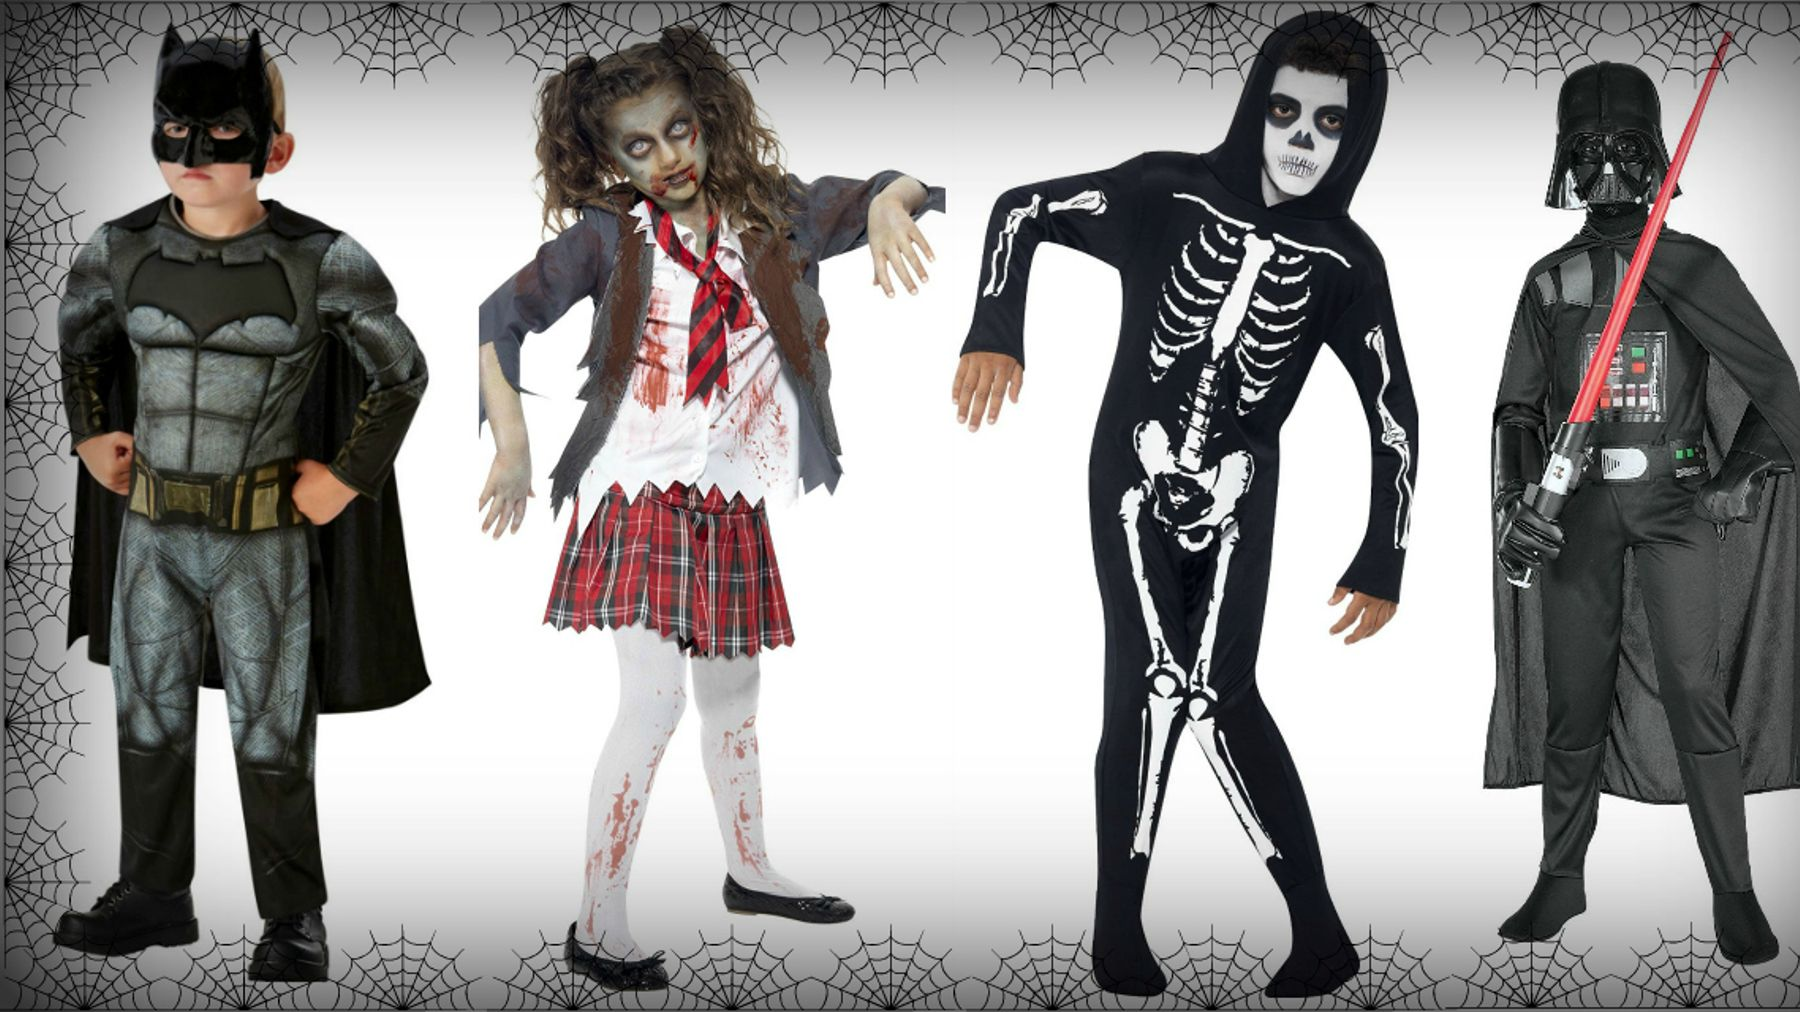 Halloween Outfits For Kids.30 Children S Halloween Costumes From 7 50 Closer